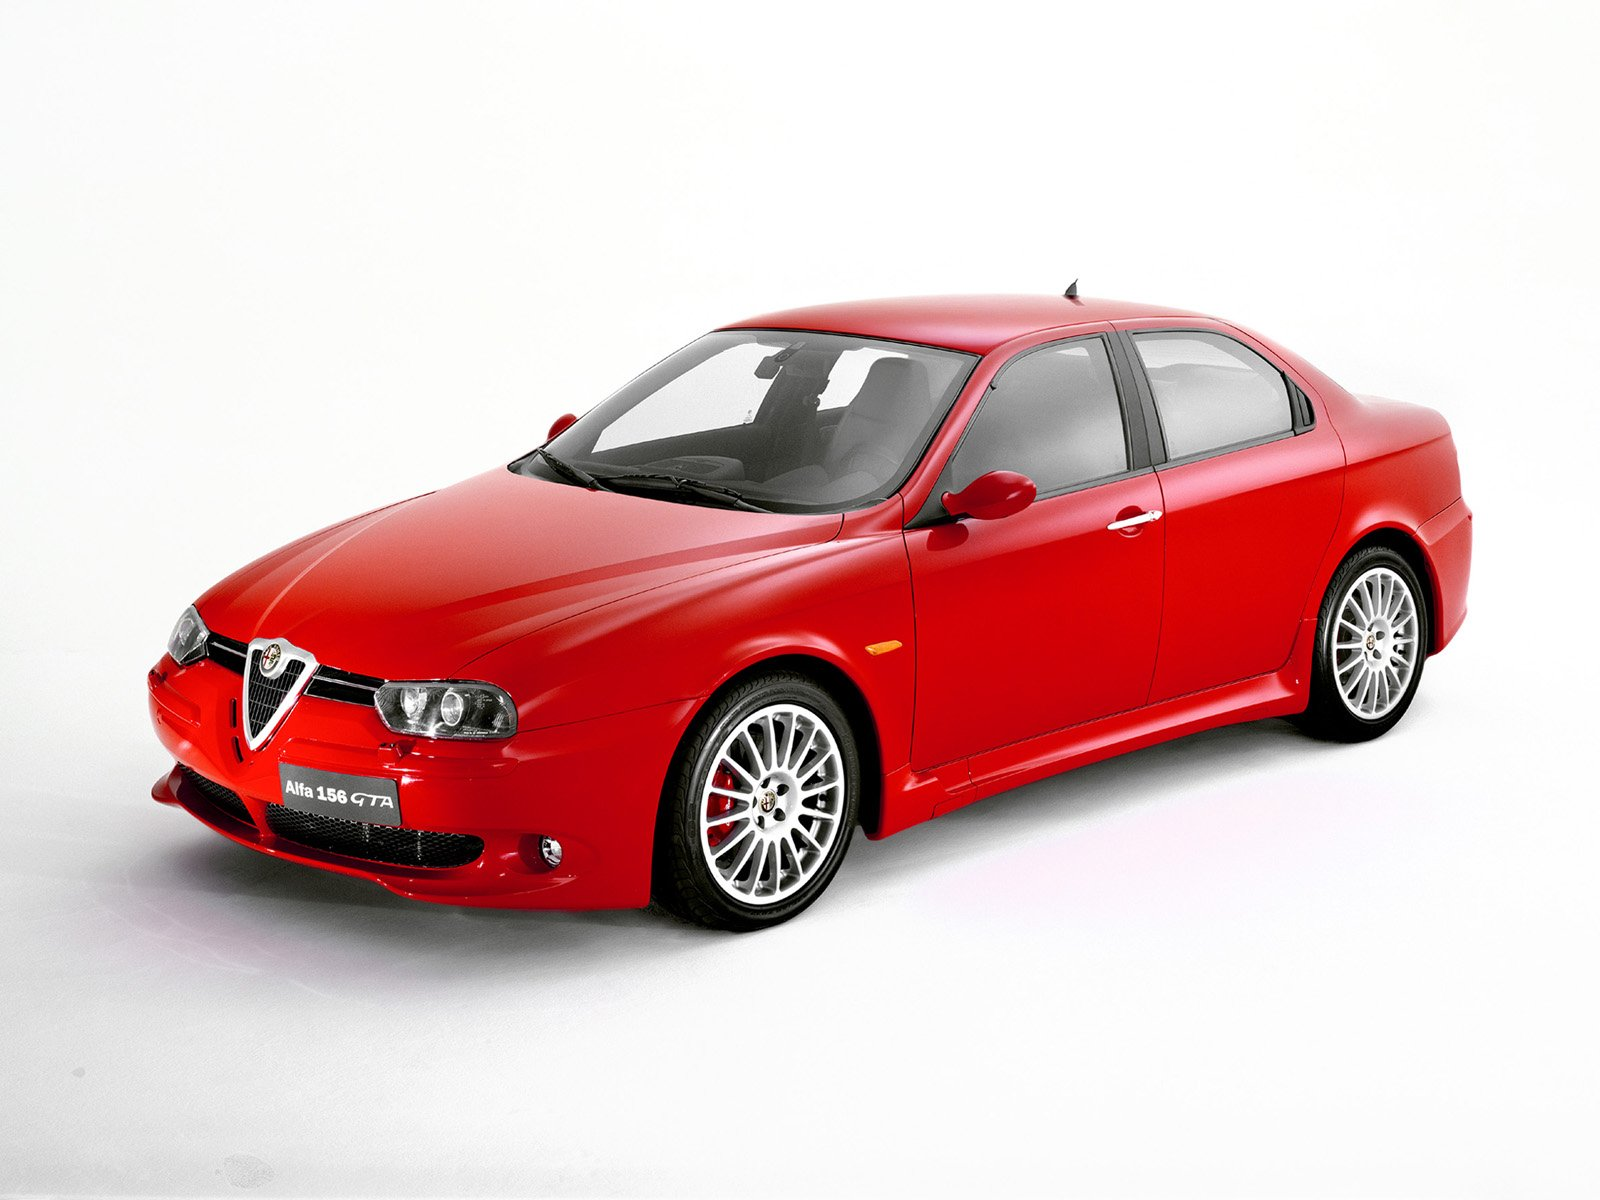 Alfa romeo 156 photo - 4